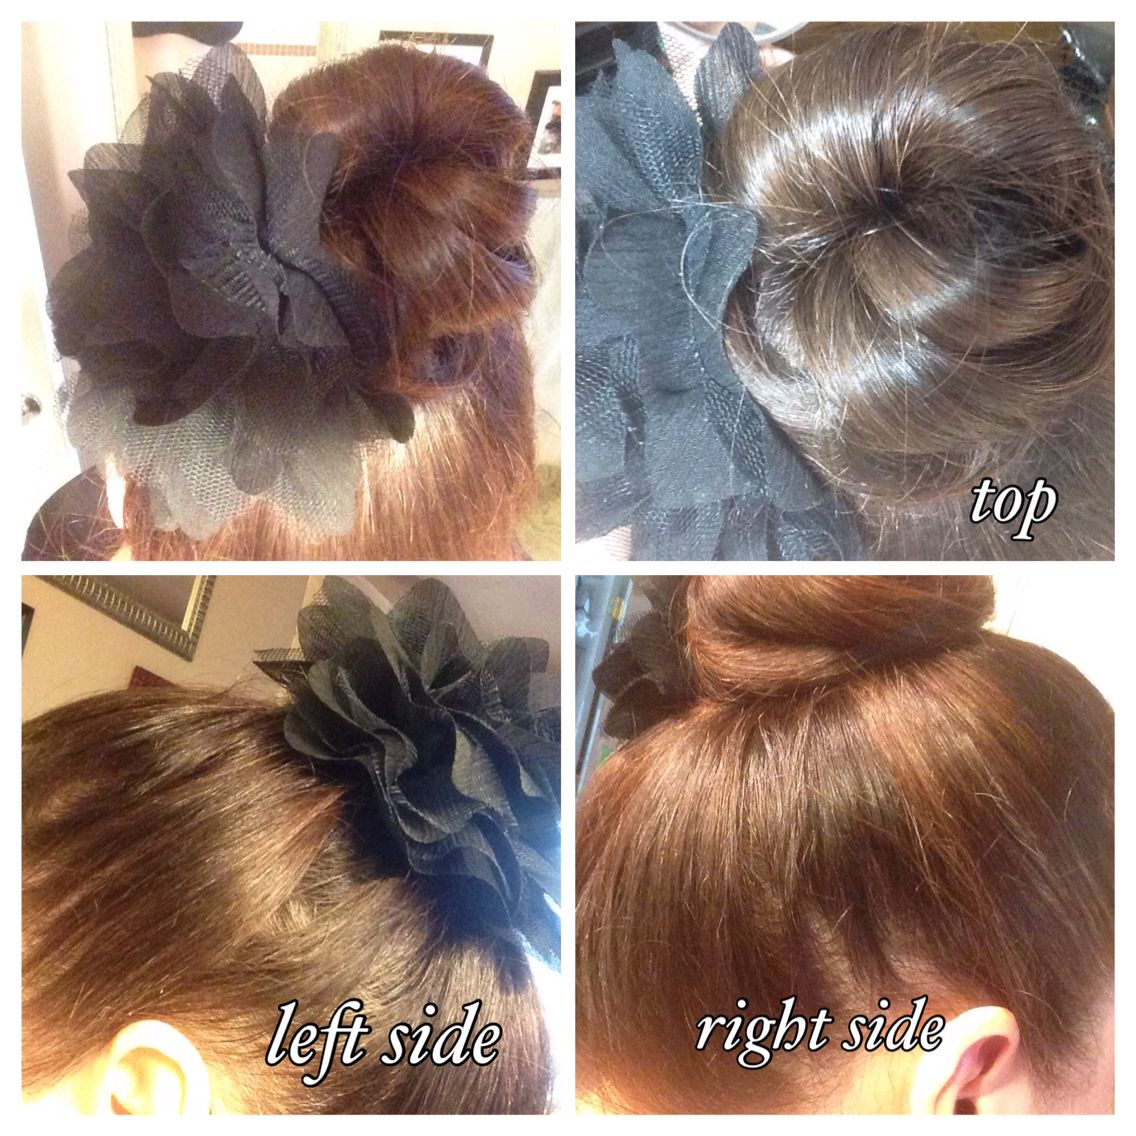 Easy Style For Three Day Old Hair Ballerina Bun Curl Clear Hair Band High Head Pony Wrap Sections Around Pony And Bobby Pin In Place Clear Hair Ballerina Bun Hair Styles